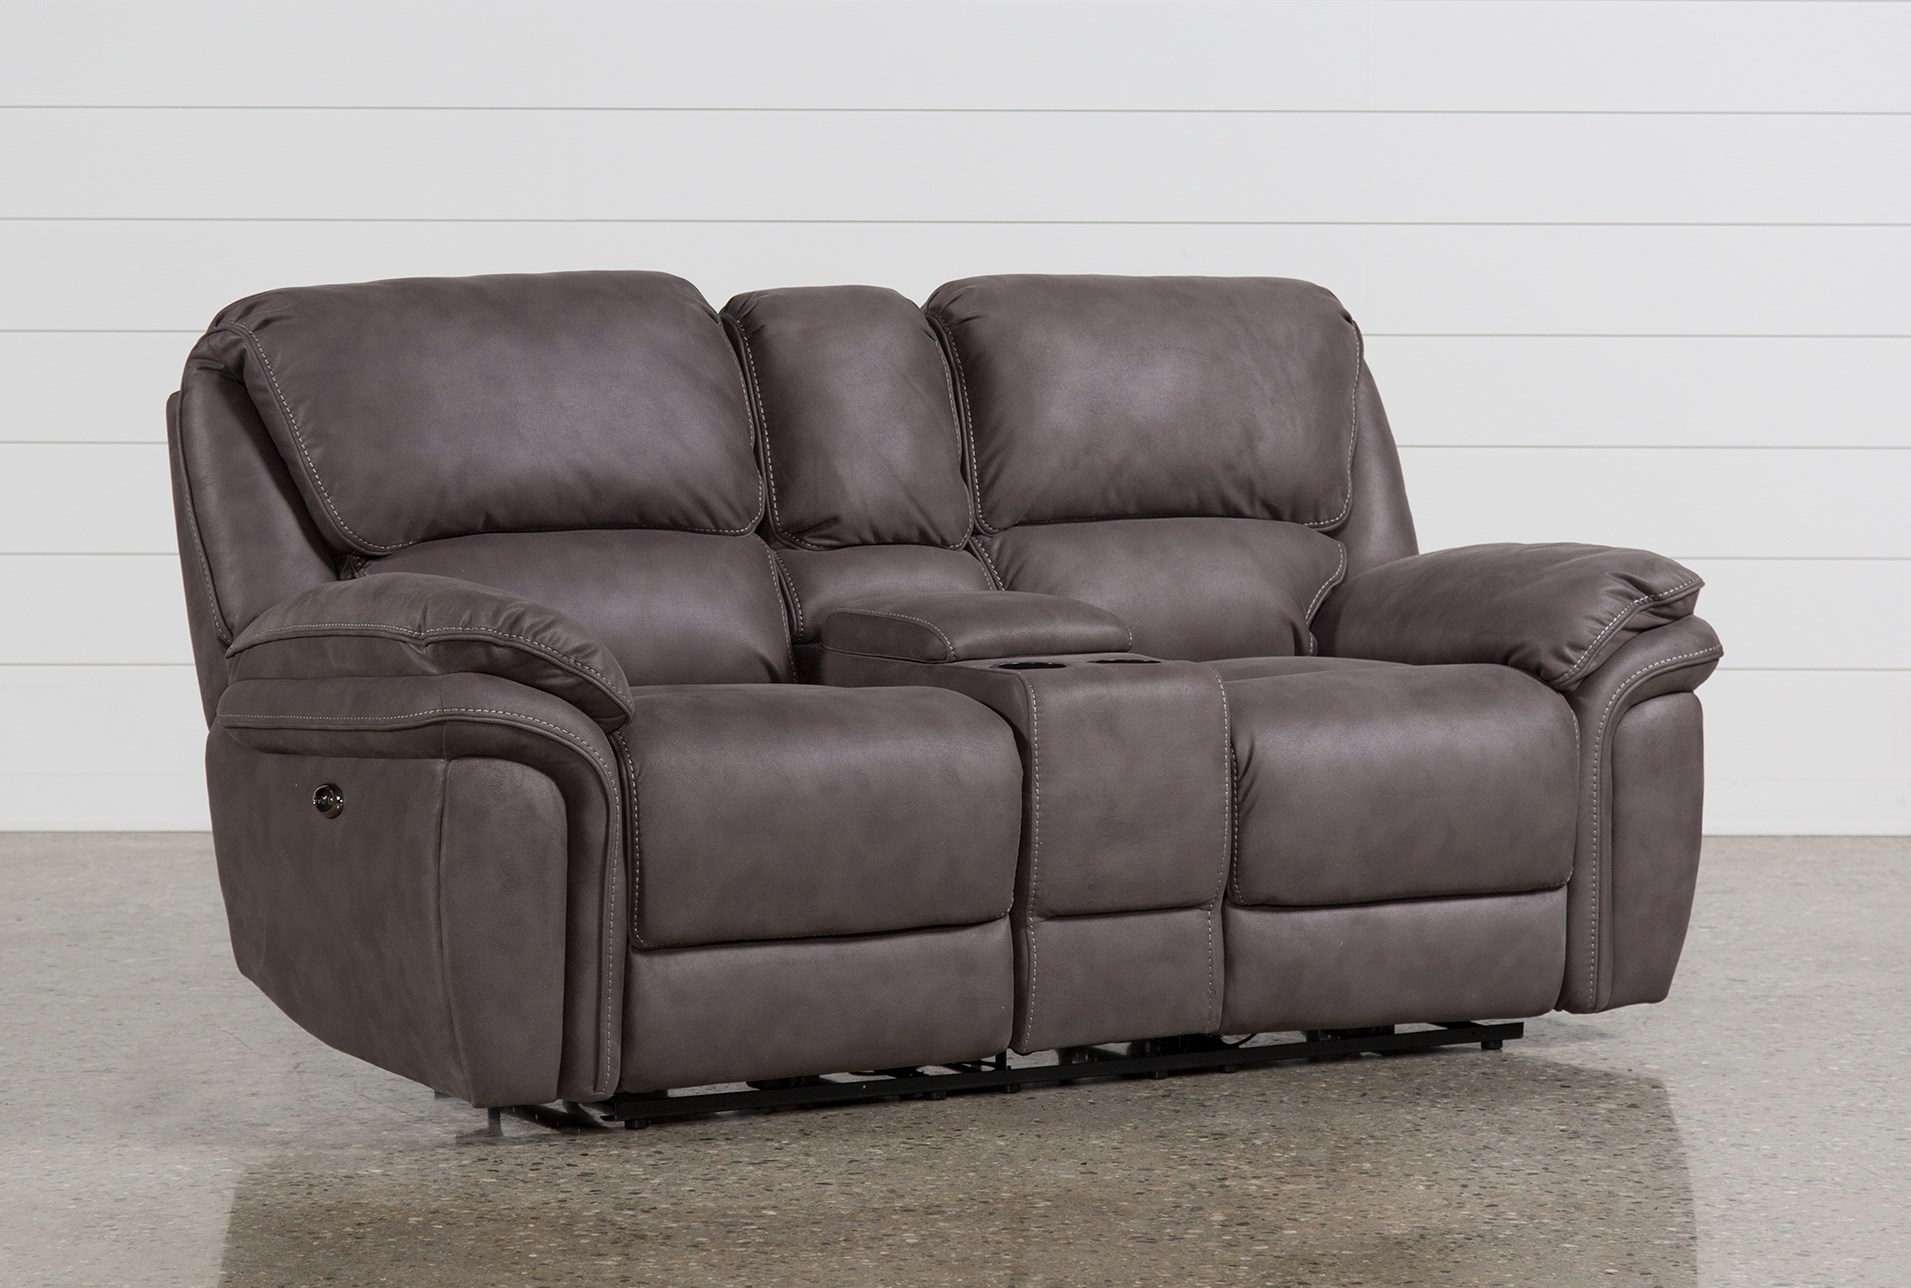 resolution console product tobin share com download reclining image loveseat high via email a flexsteel